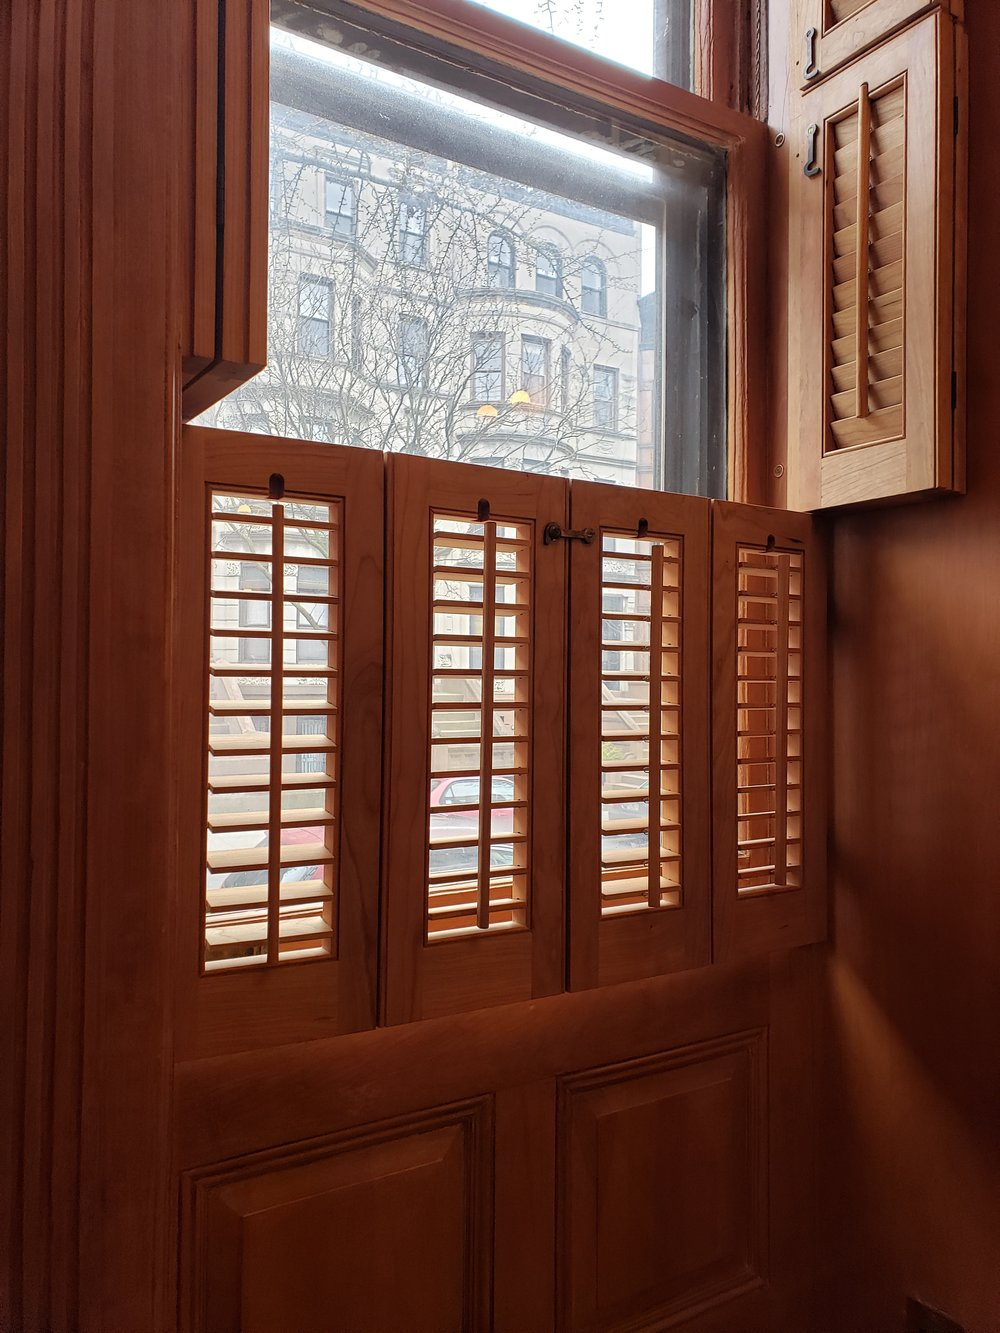 3 Tier Louvered Cherry Shutters, Park Slope Brooklyn